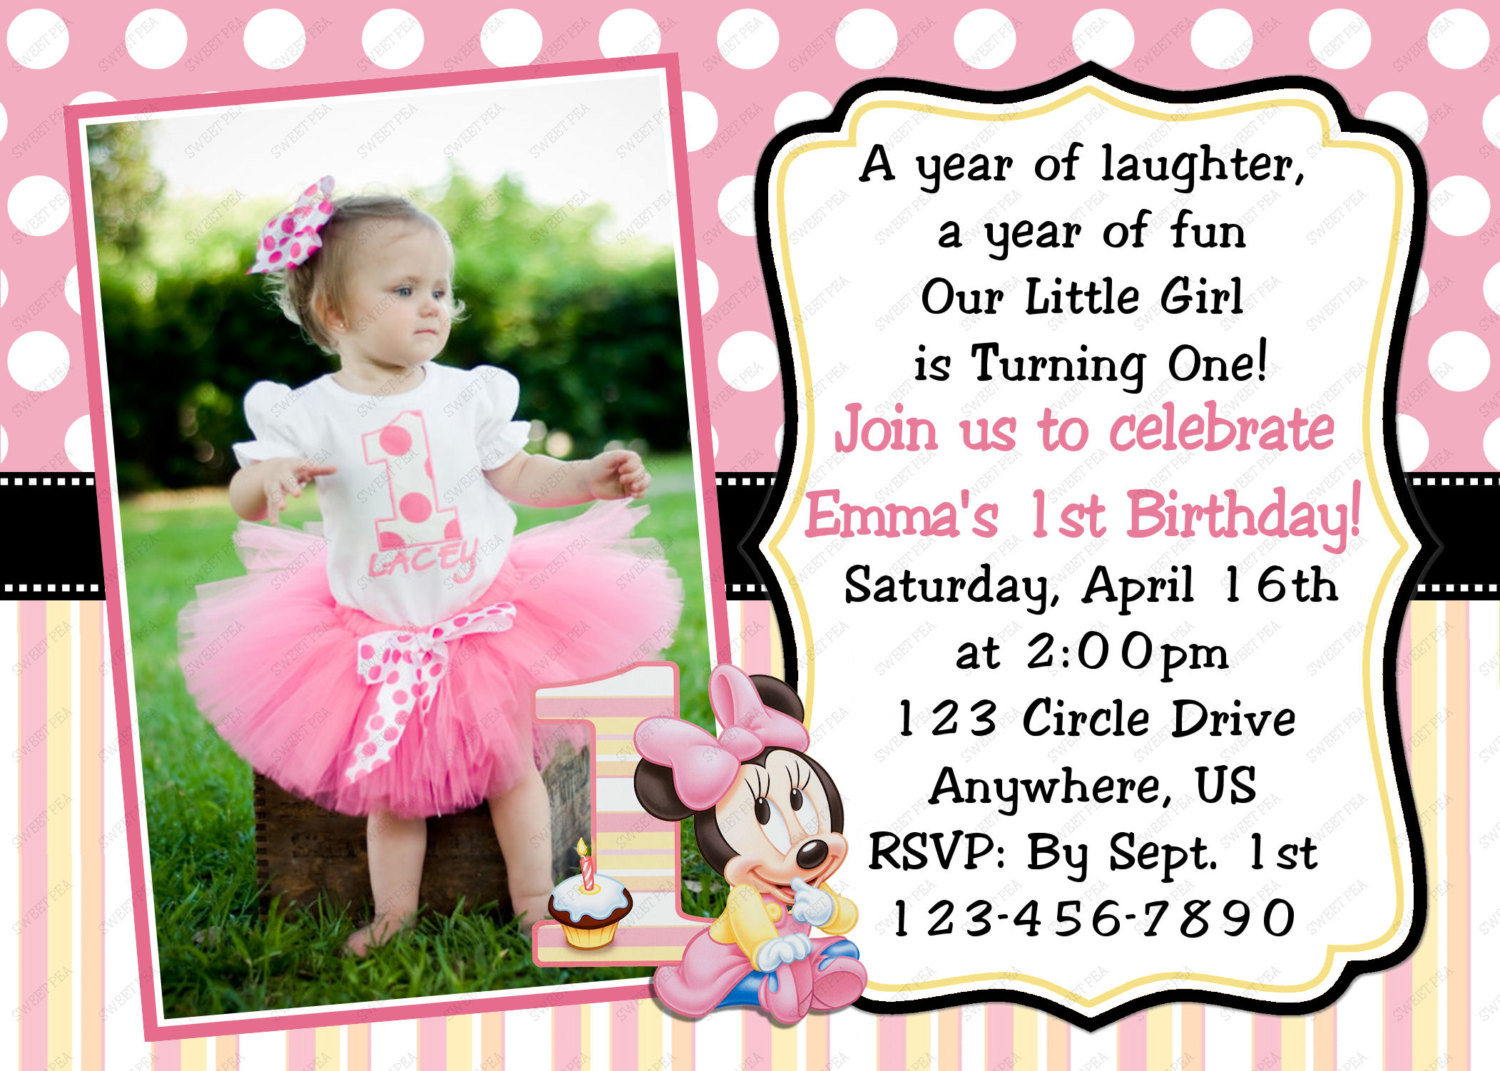 1st birthday minnie mouse photo invitations ; minnie-mouse-1st-birthday-invitations-template-cixk4sqh